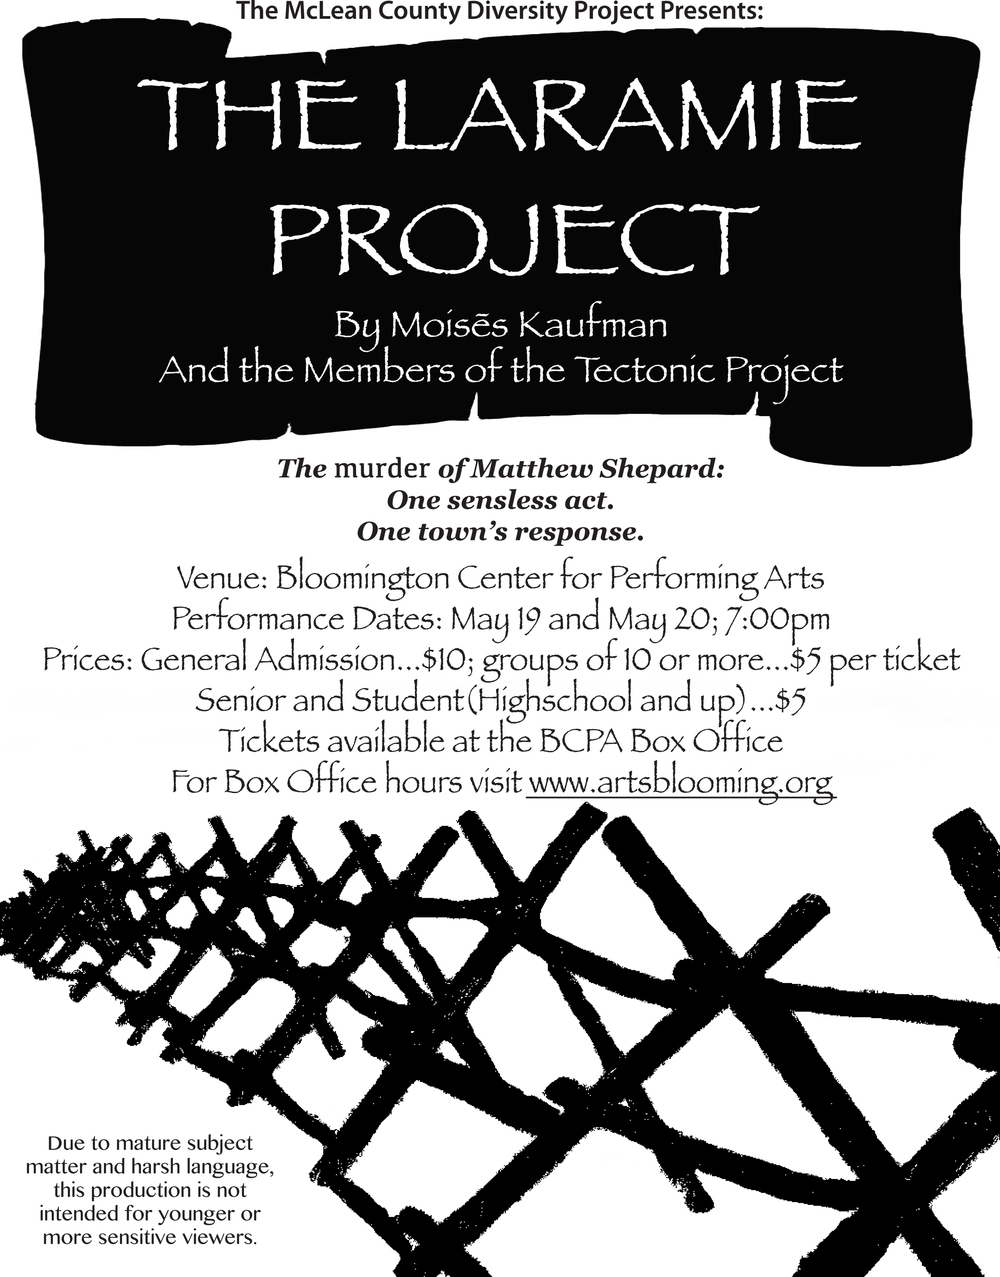 twin cities stories not in our town bloomington normal kerry laramie project opportunity to remember discuss and learn